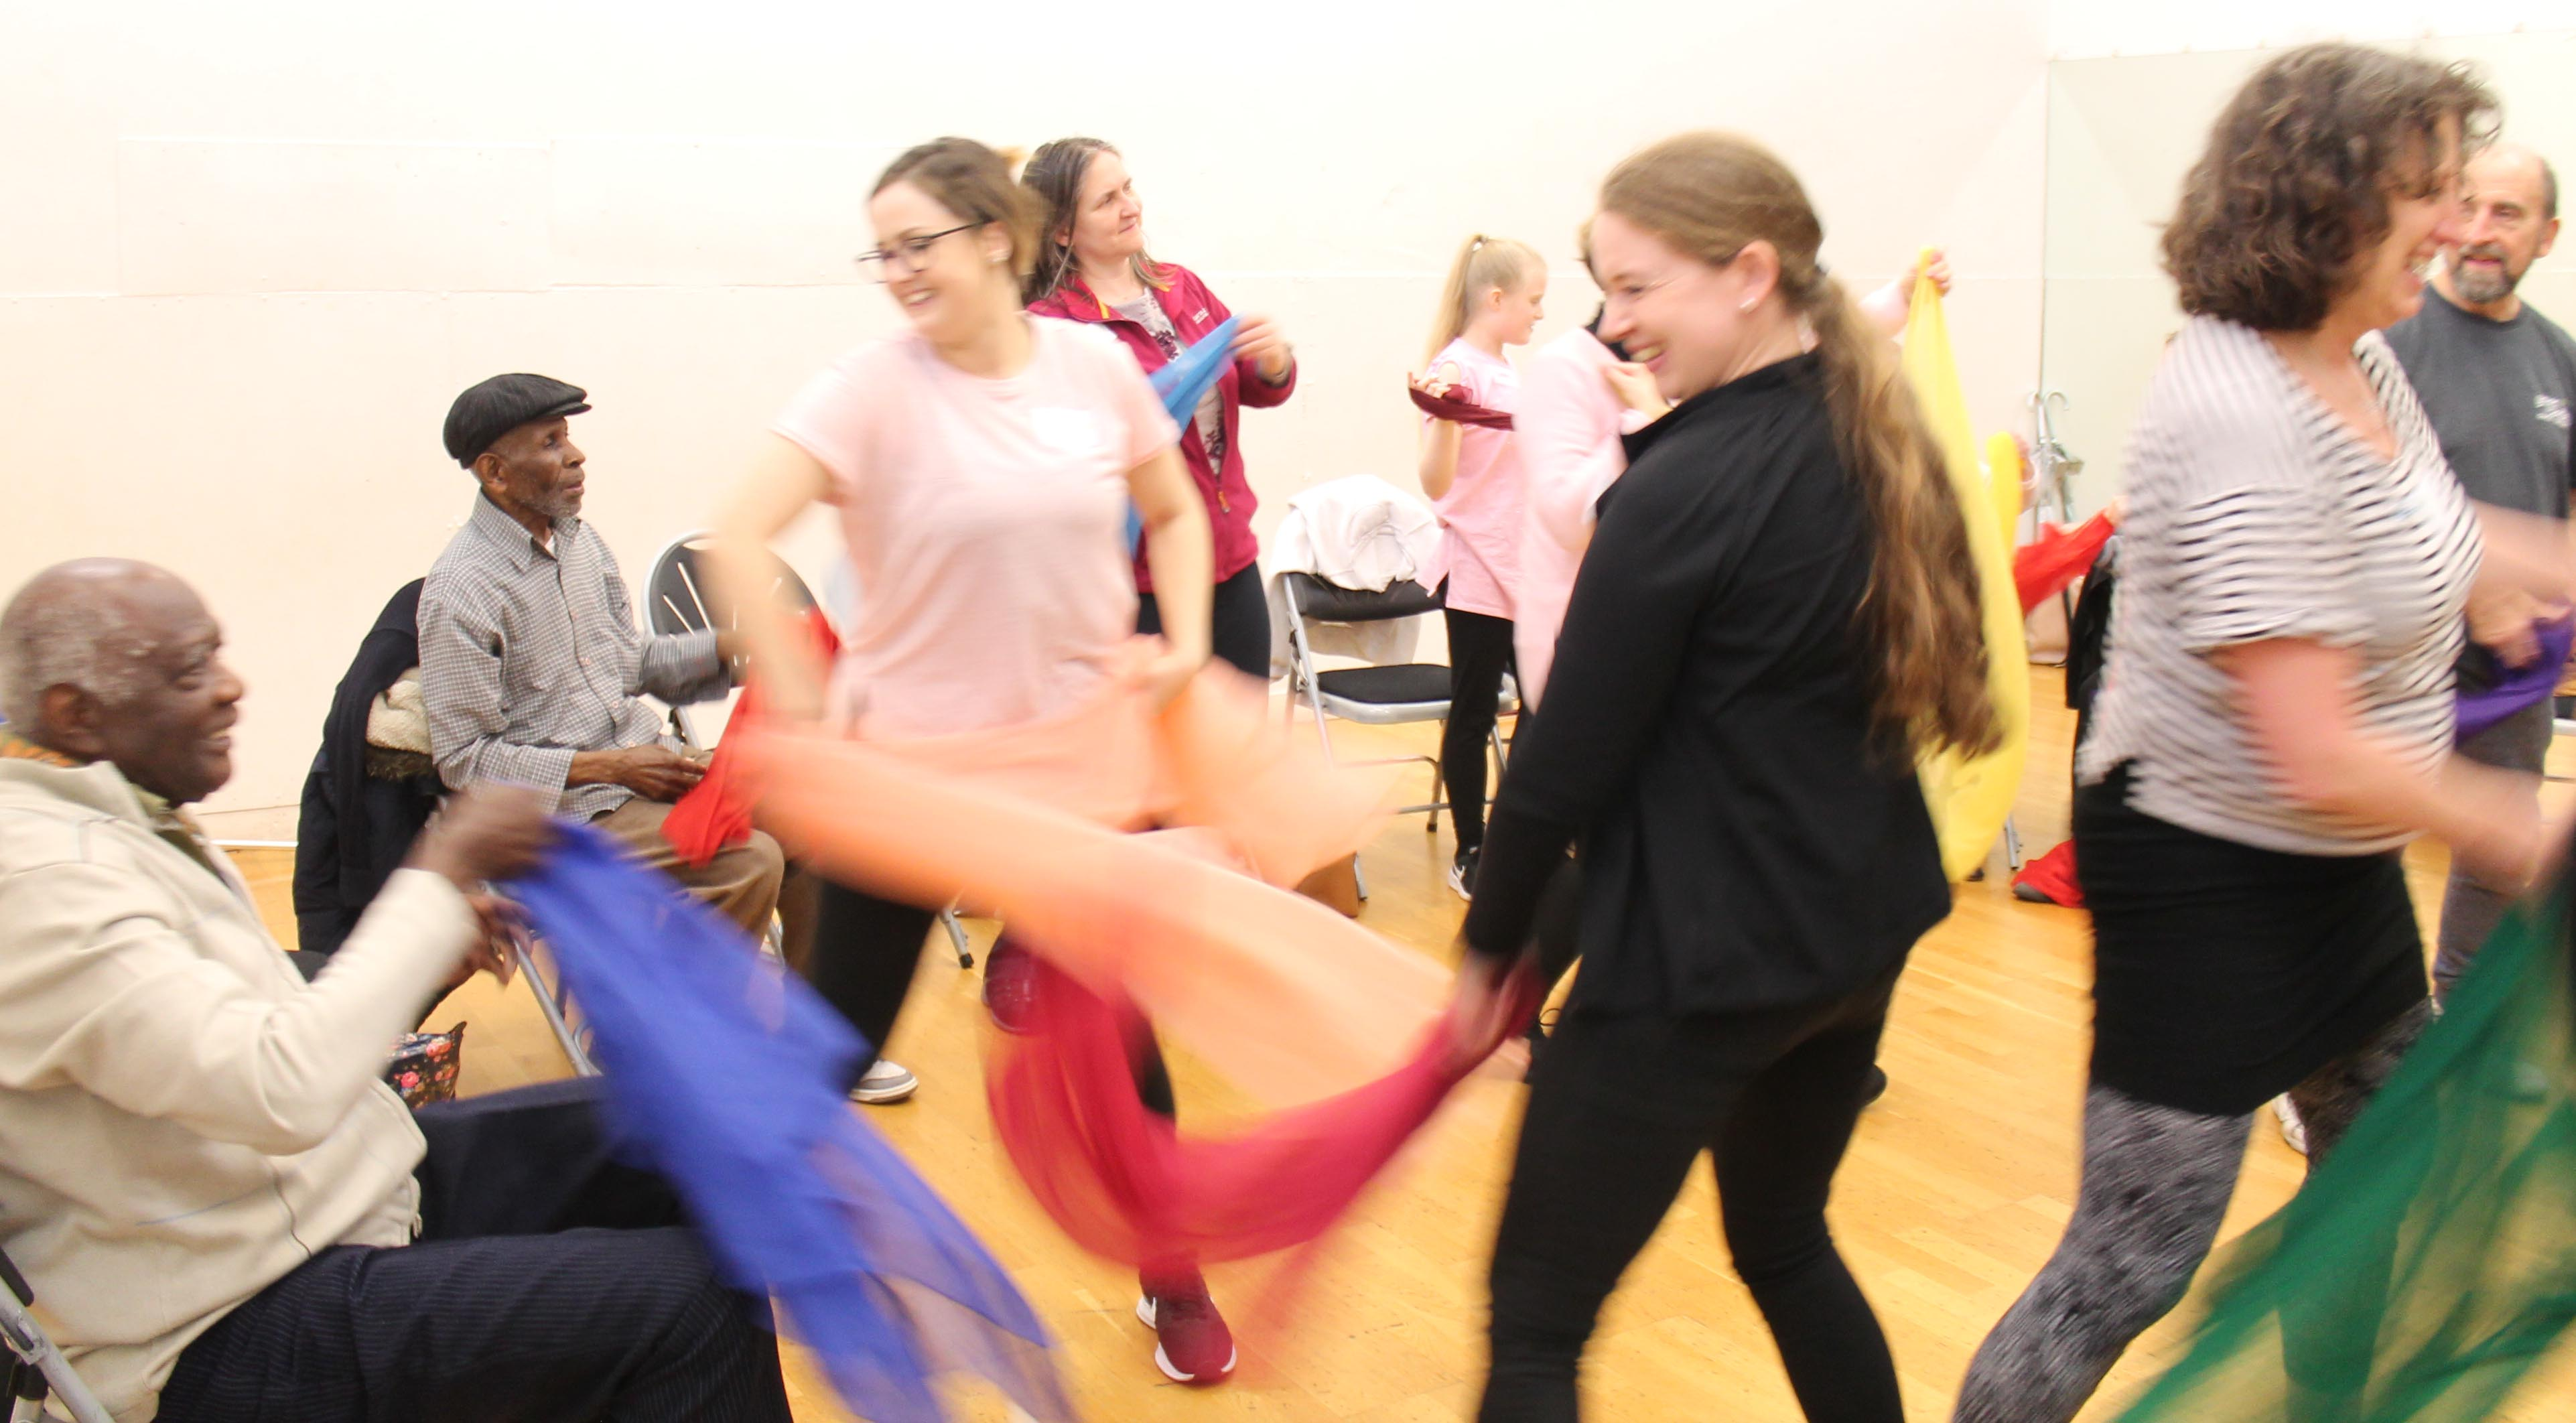 News | Green Candle Dance | Community Dance in London